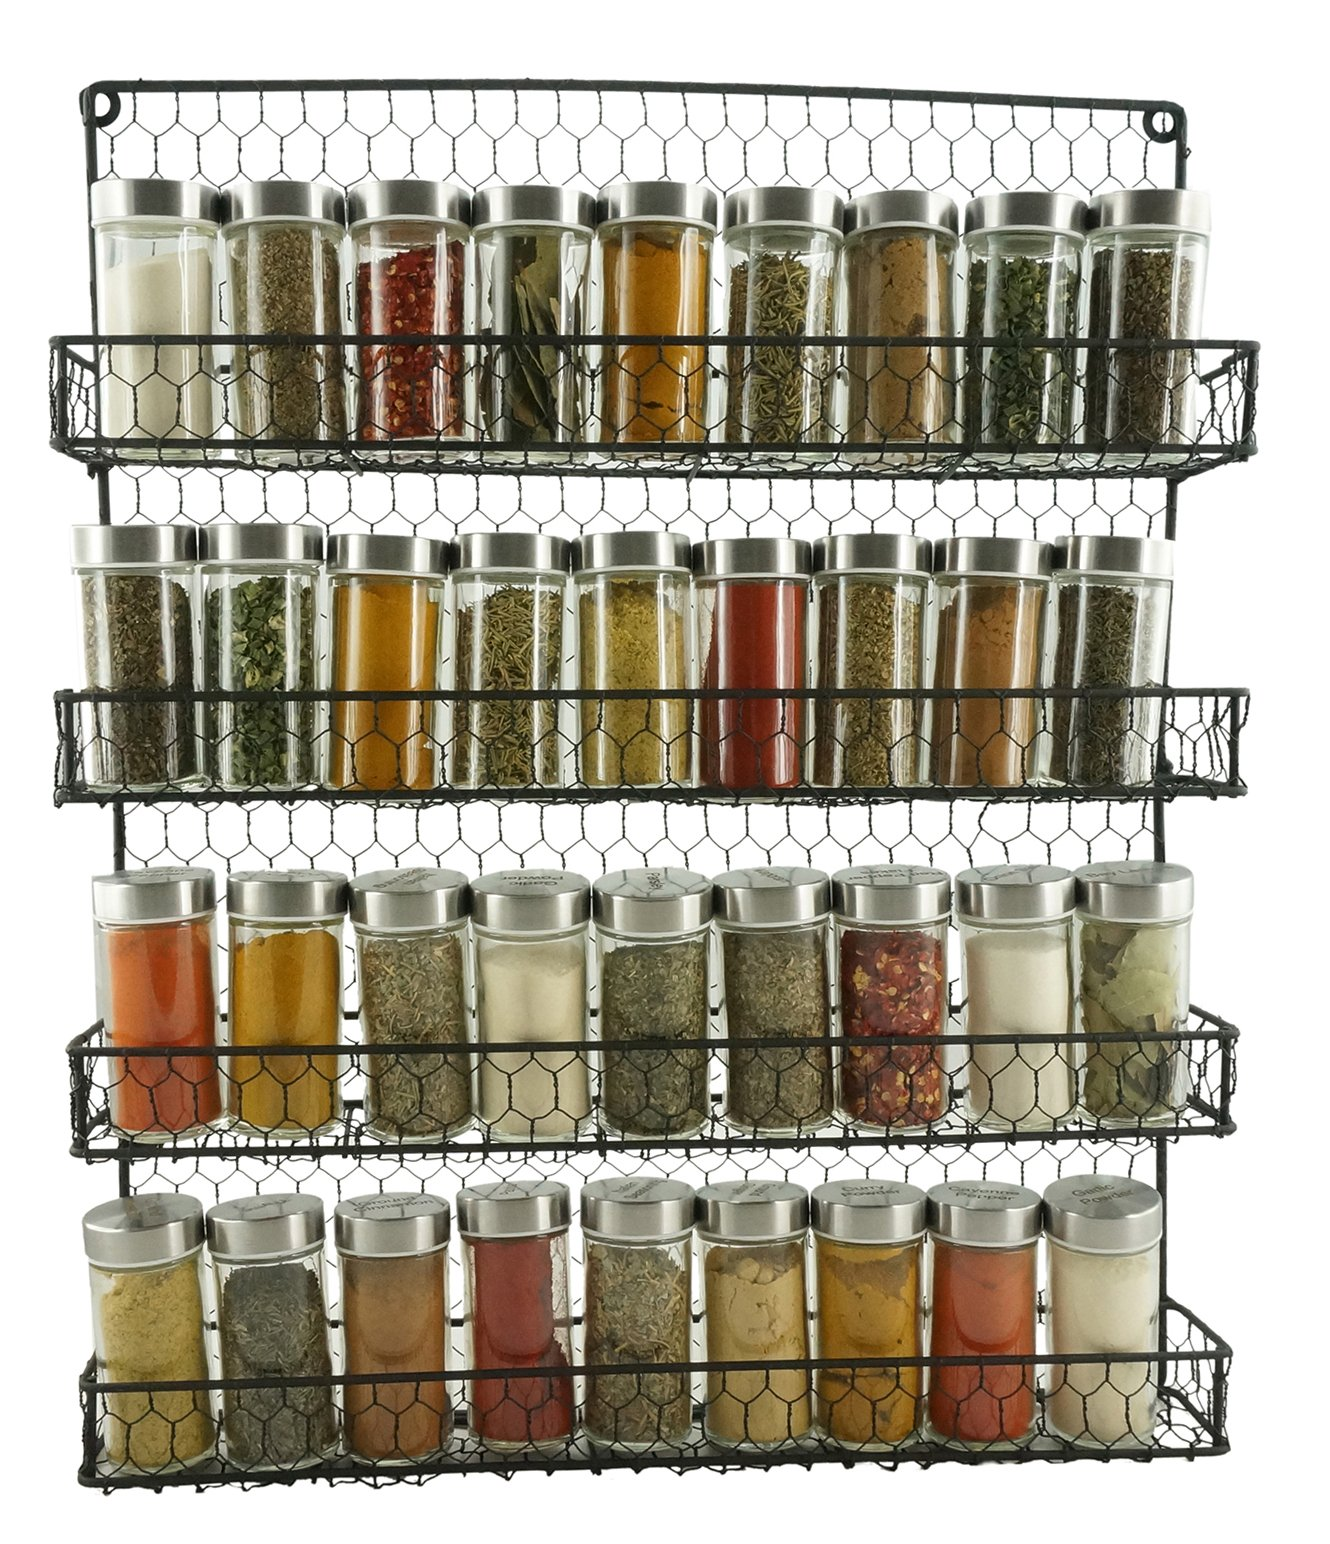 Spice Rack Organizer Country Rustic Wire Style Great Storage for Pantry Cabinet and Kitchen Wall Mounted 4 Tier Shelves Herb Holder Seasoning Jars Organizers Black